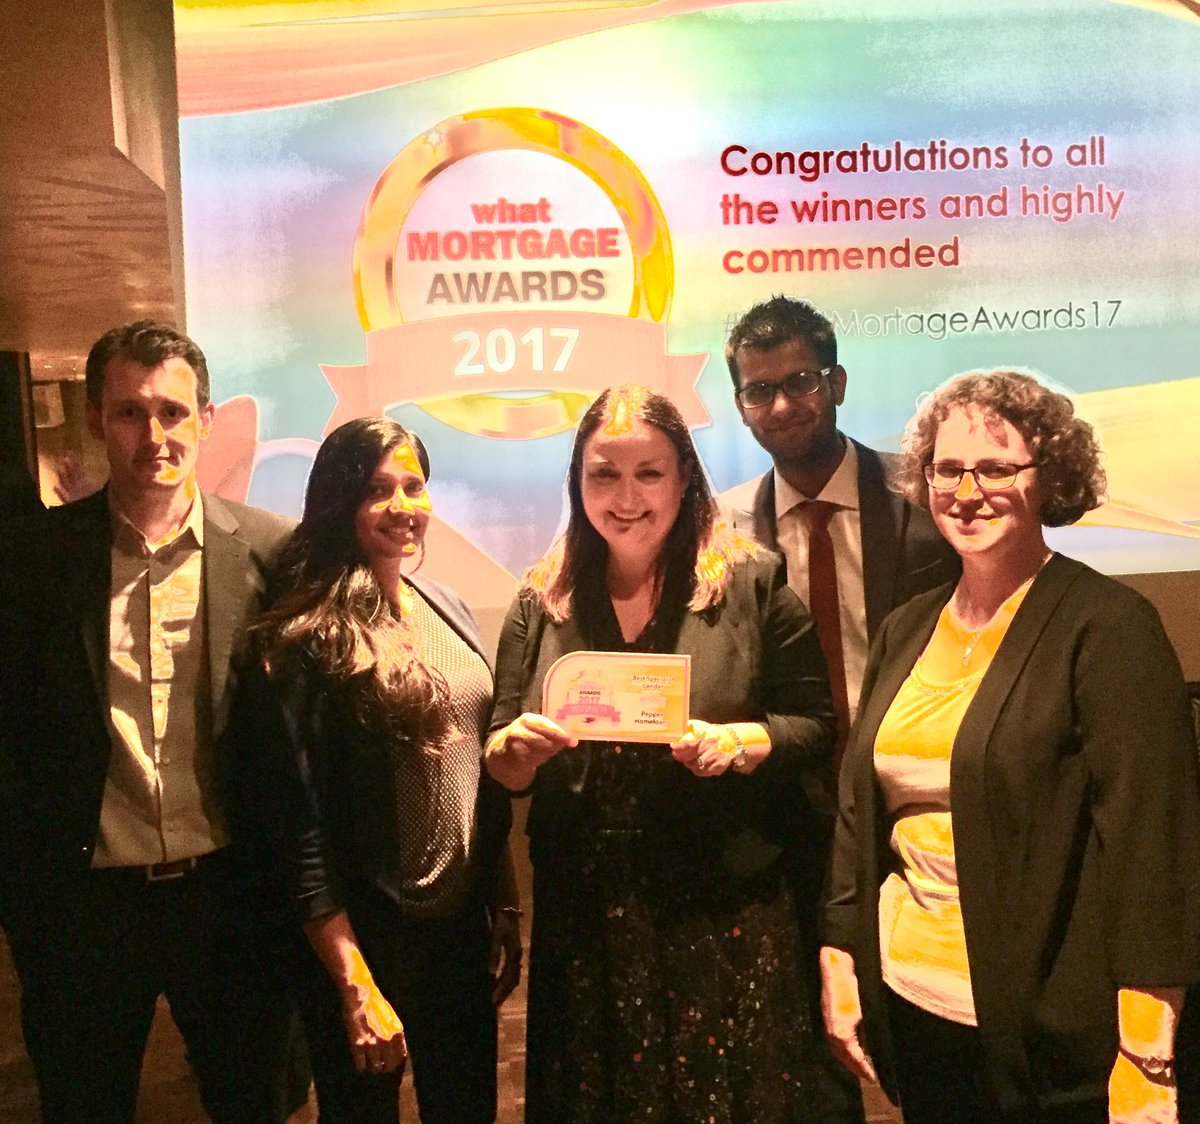 We did it! Pepper Homeloans wins @WhatMortgage&#39;s #award for Best Specialist Lender  Thanks to everyone who voted #WhatMortgageAwards17&quot;<br>http://pic.twitter.com/X6YlgeEwBm